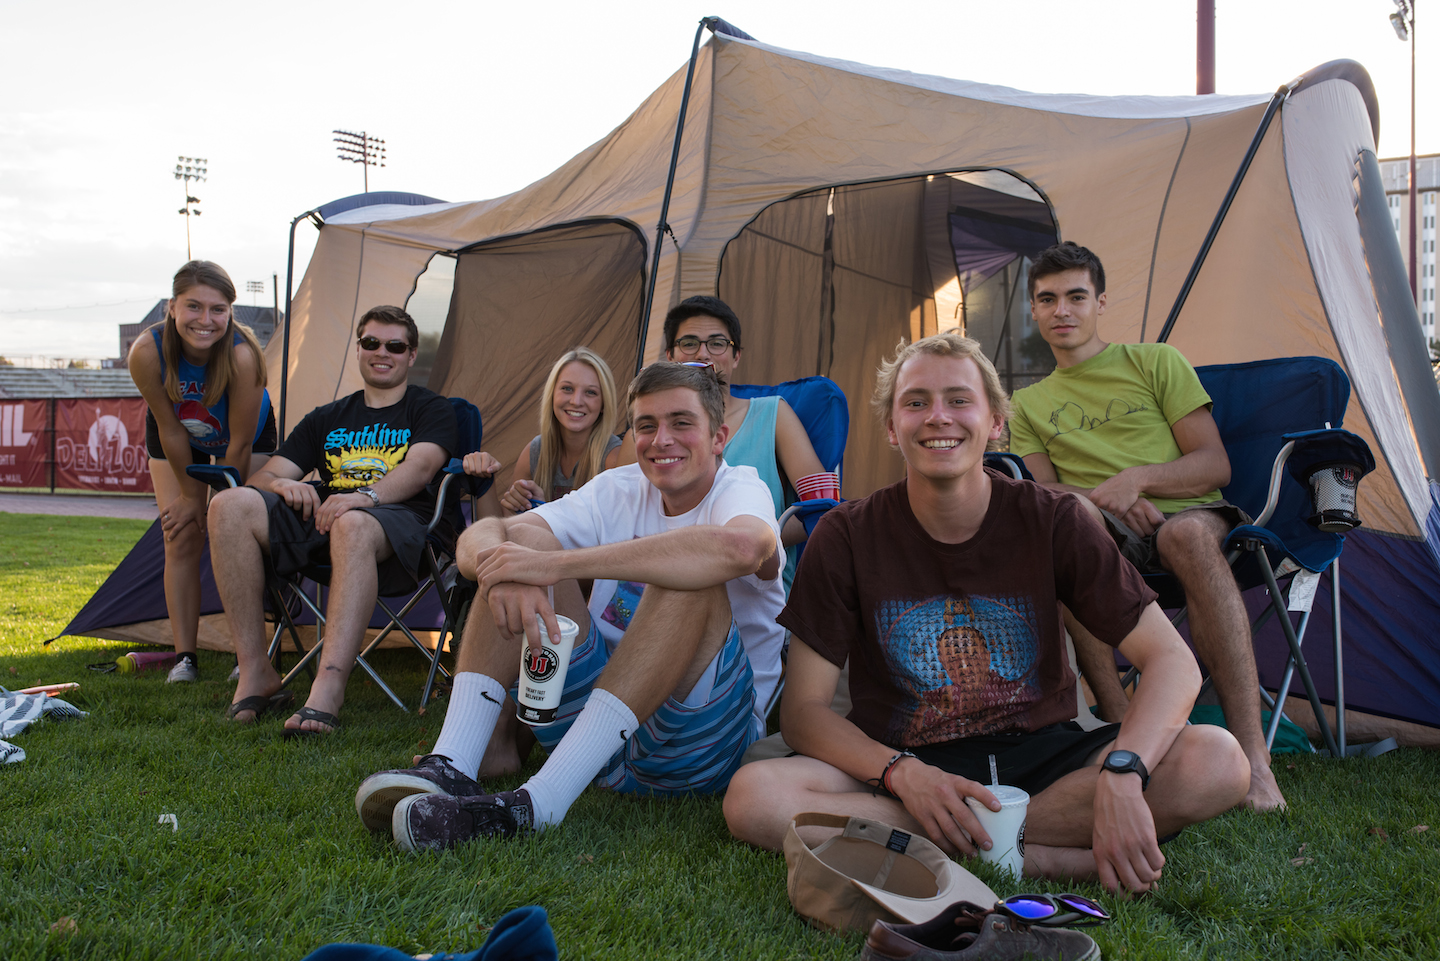 Photo courtesy of Jacob Pearlstein | Seven Denver students gather around their tent on Sept. 26 during the annual hockey ticket campout outside of DU's Ritchie Center.